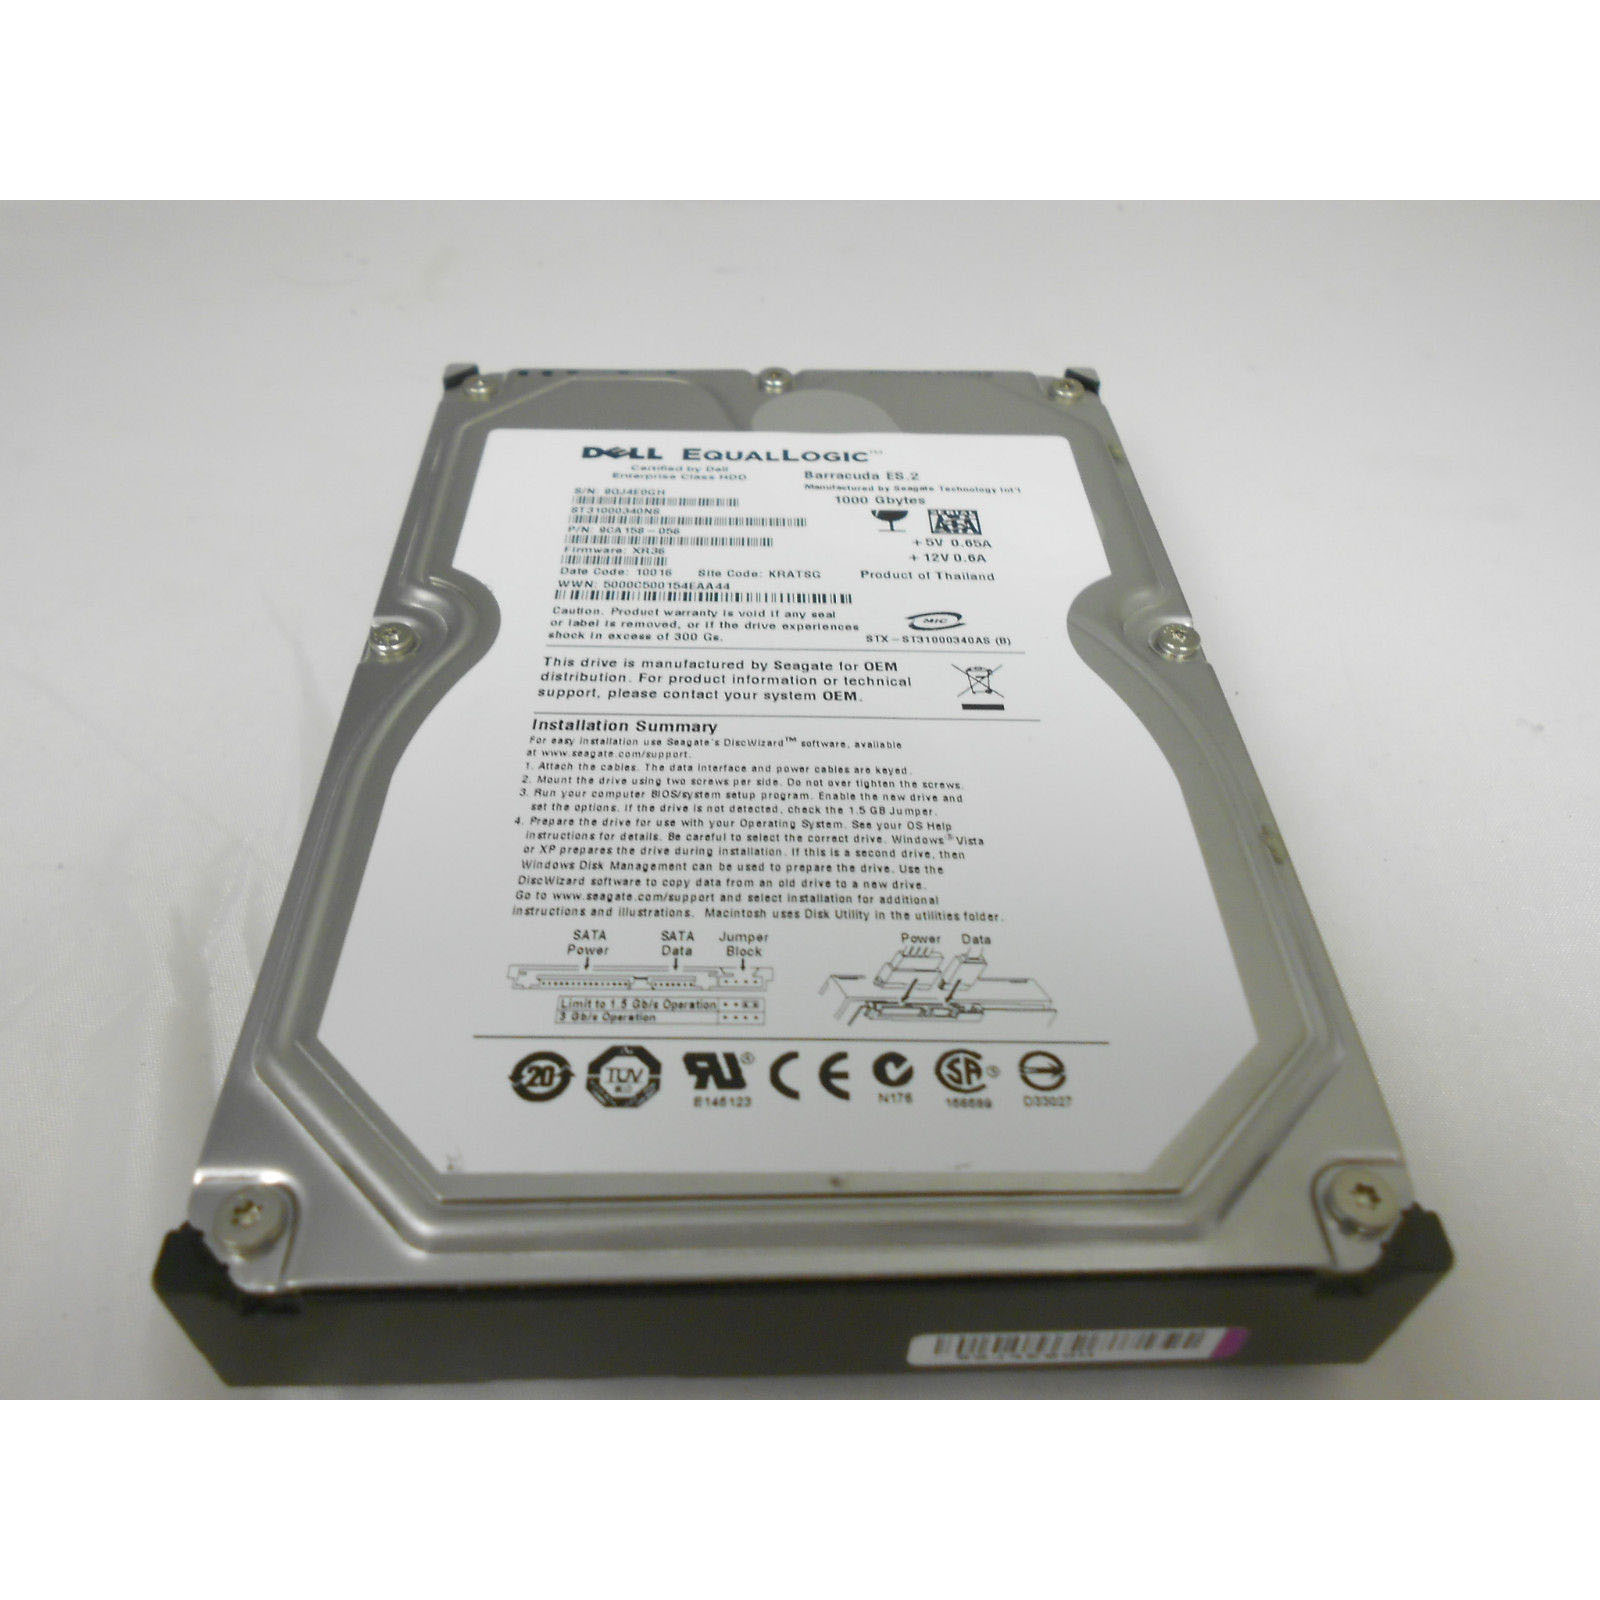 9JW154-536 - Dell EqualLogic 1TB SATA HDD